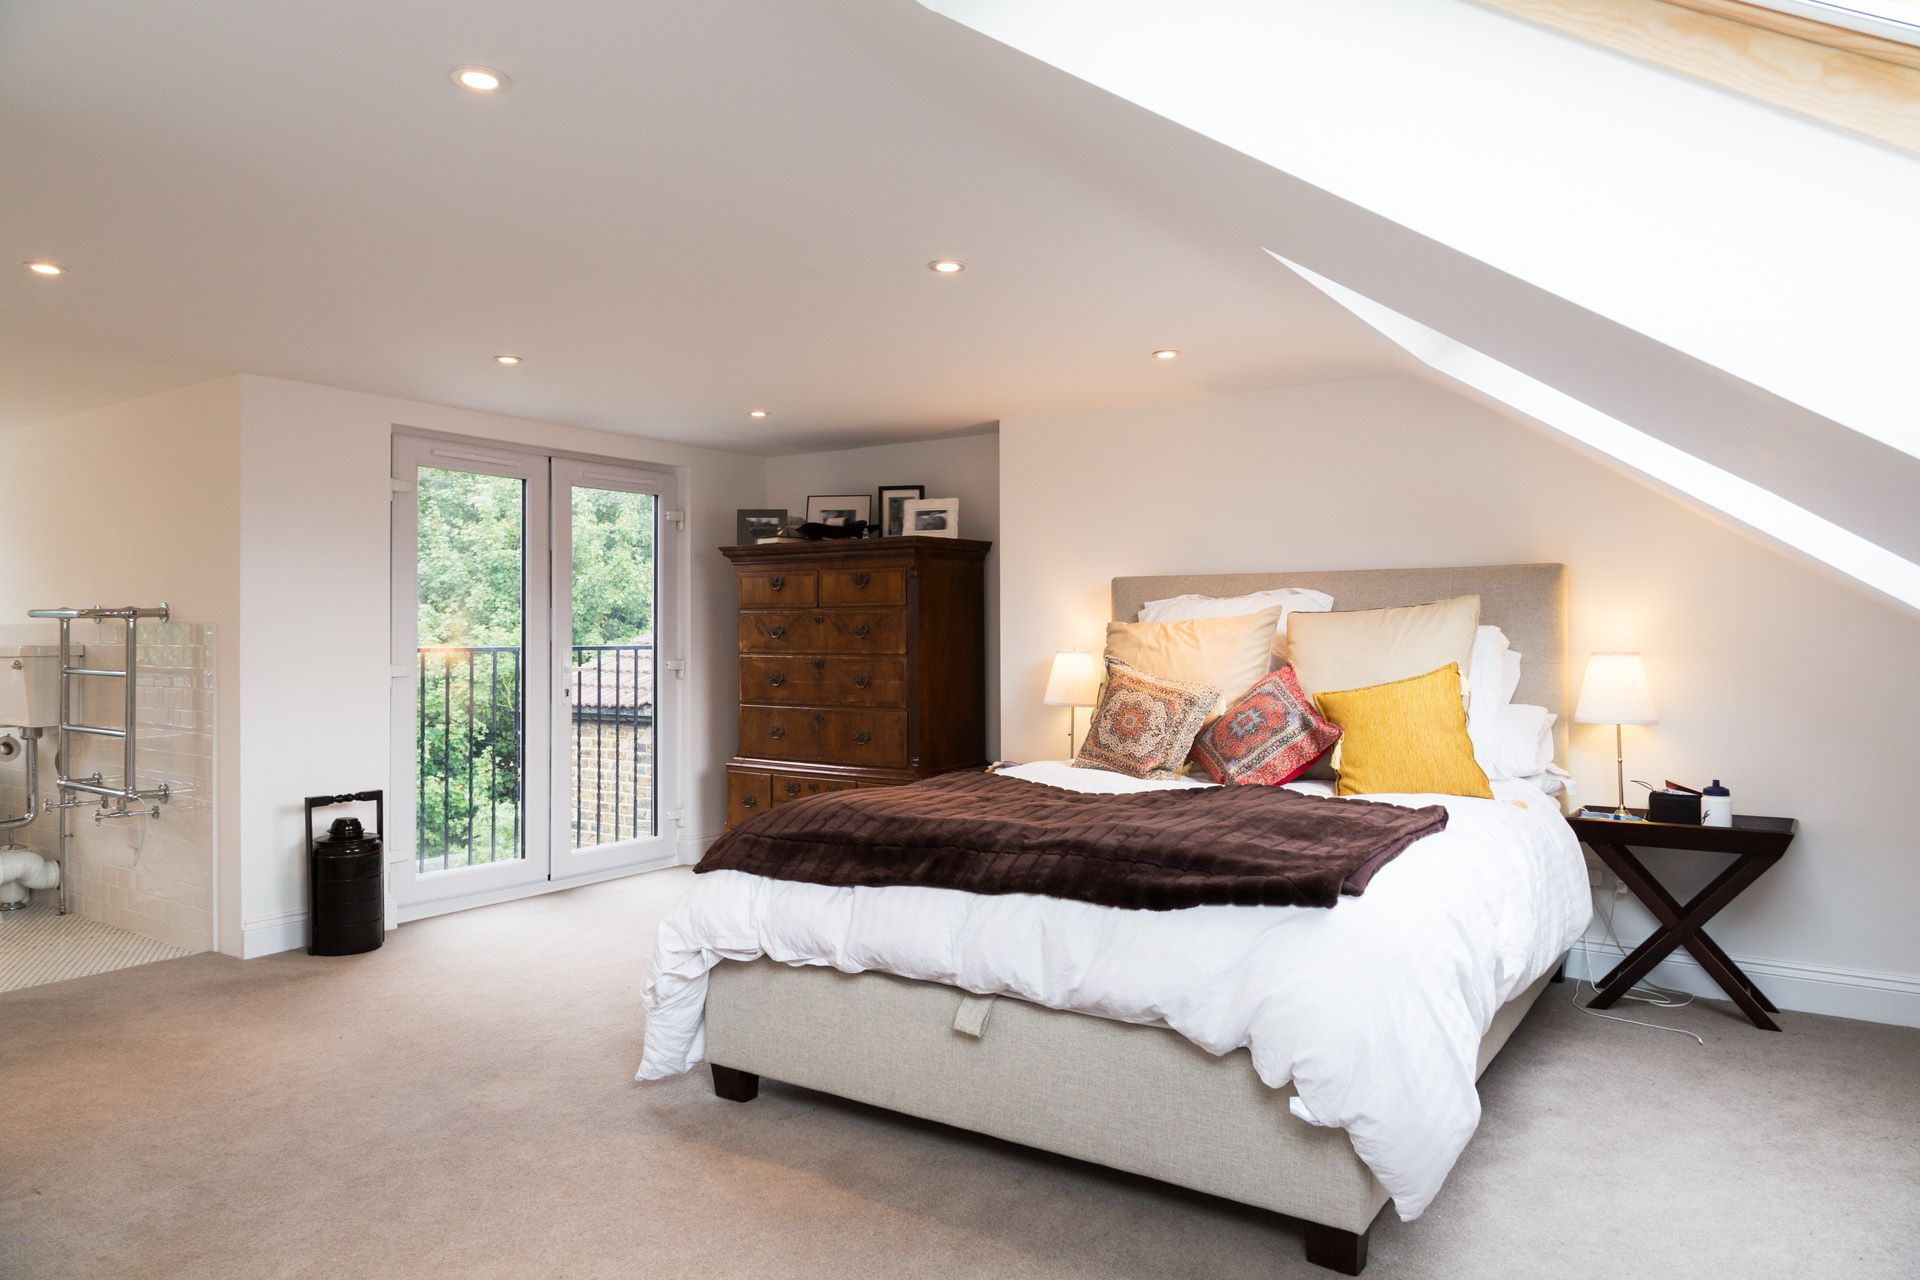 Bedroom with Juliet balcony part of a loft conversion in South East